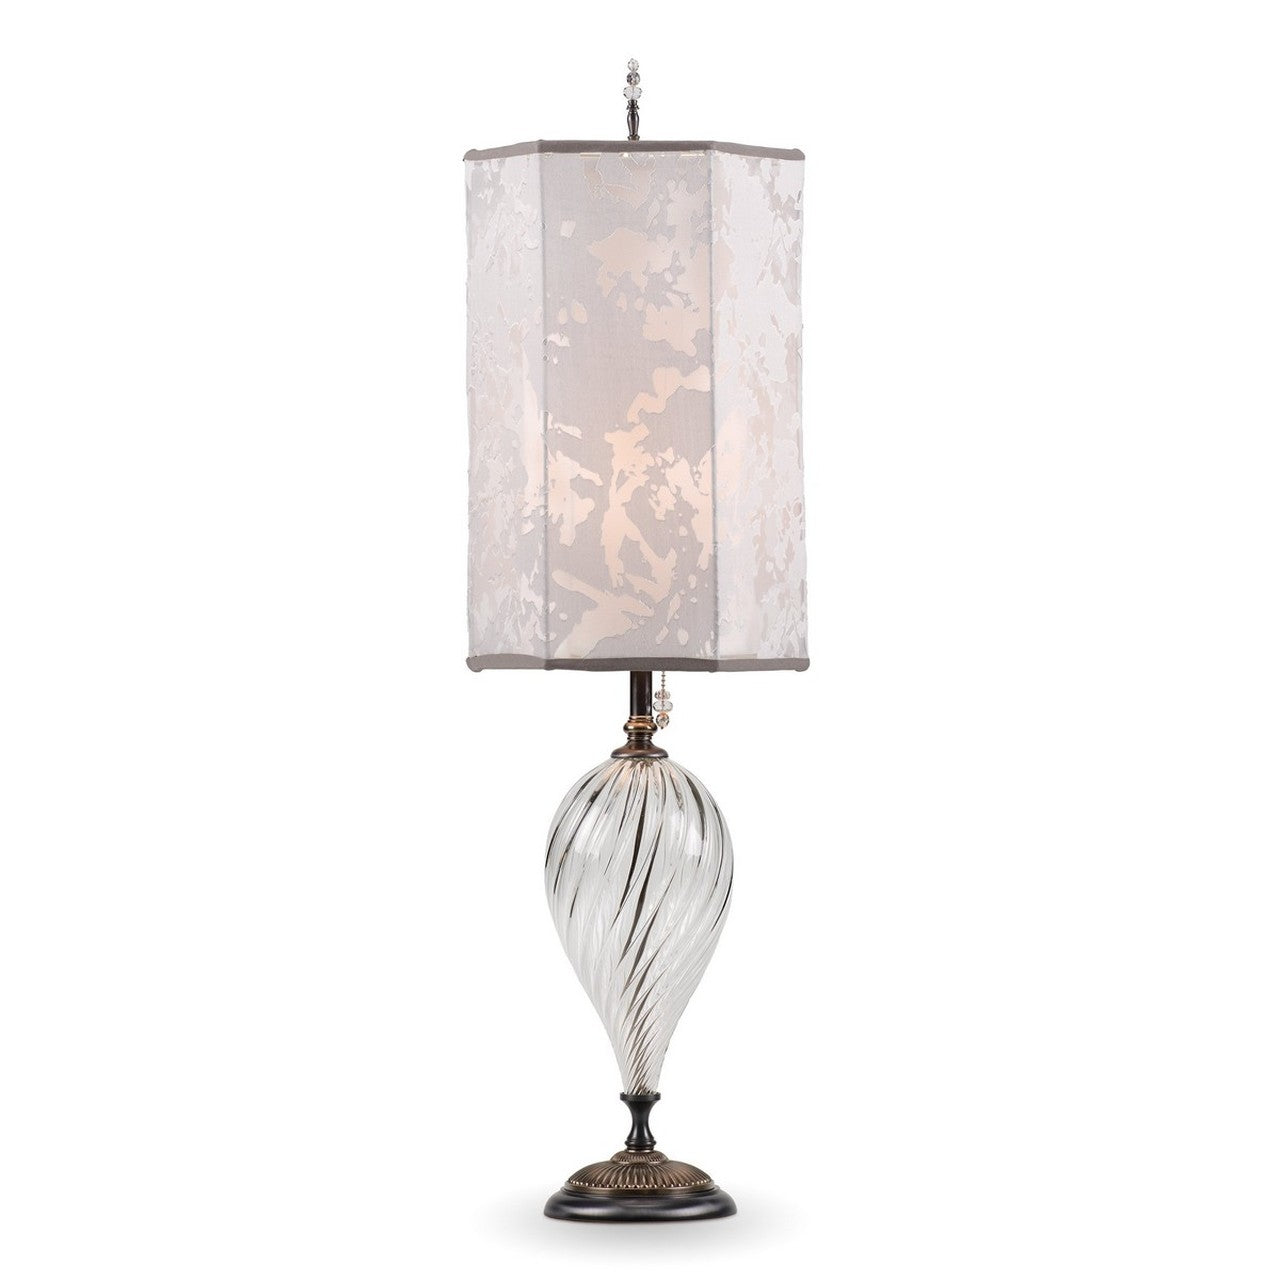 Juliana - Table Lamp